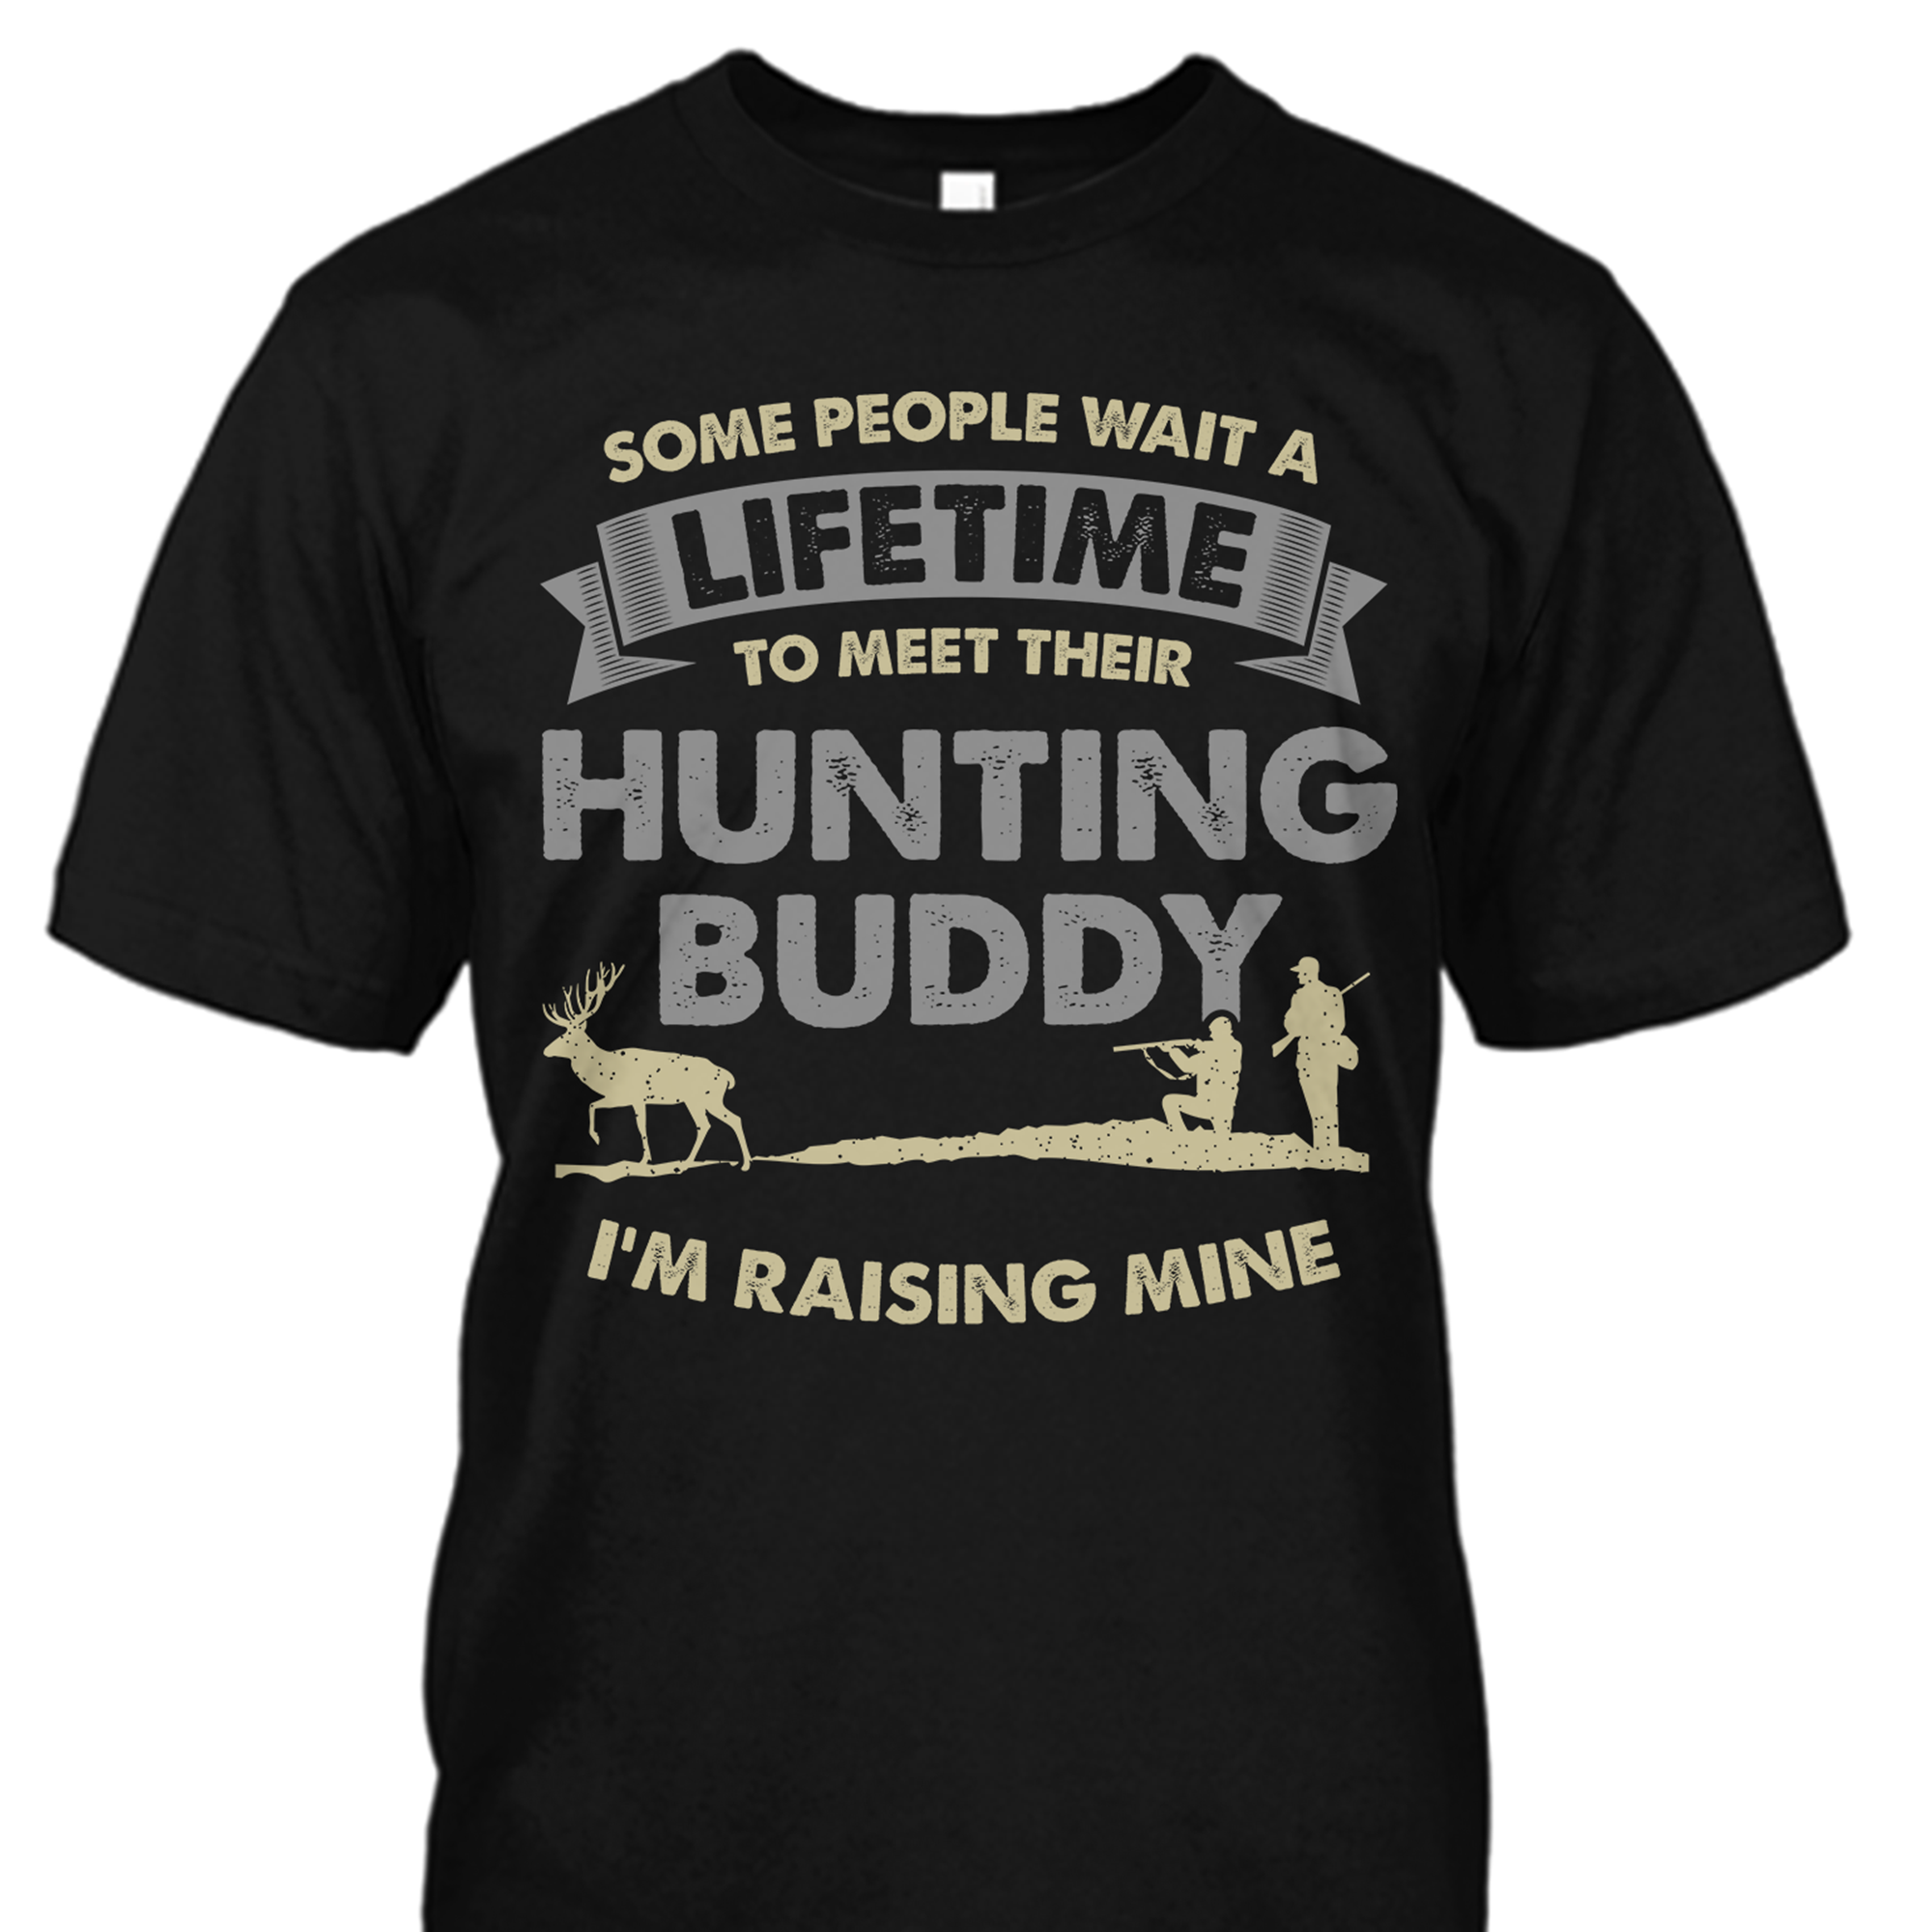 Are You Raising Your Deer Hunting Buddy?